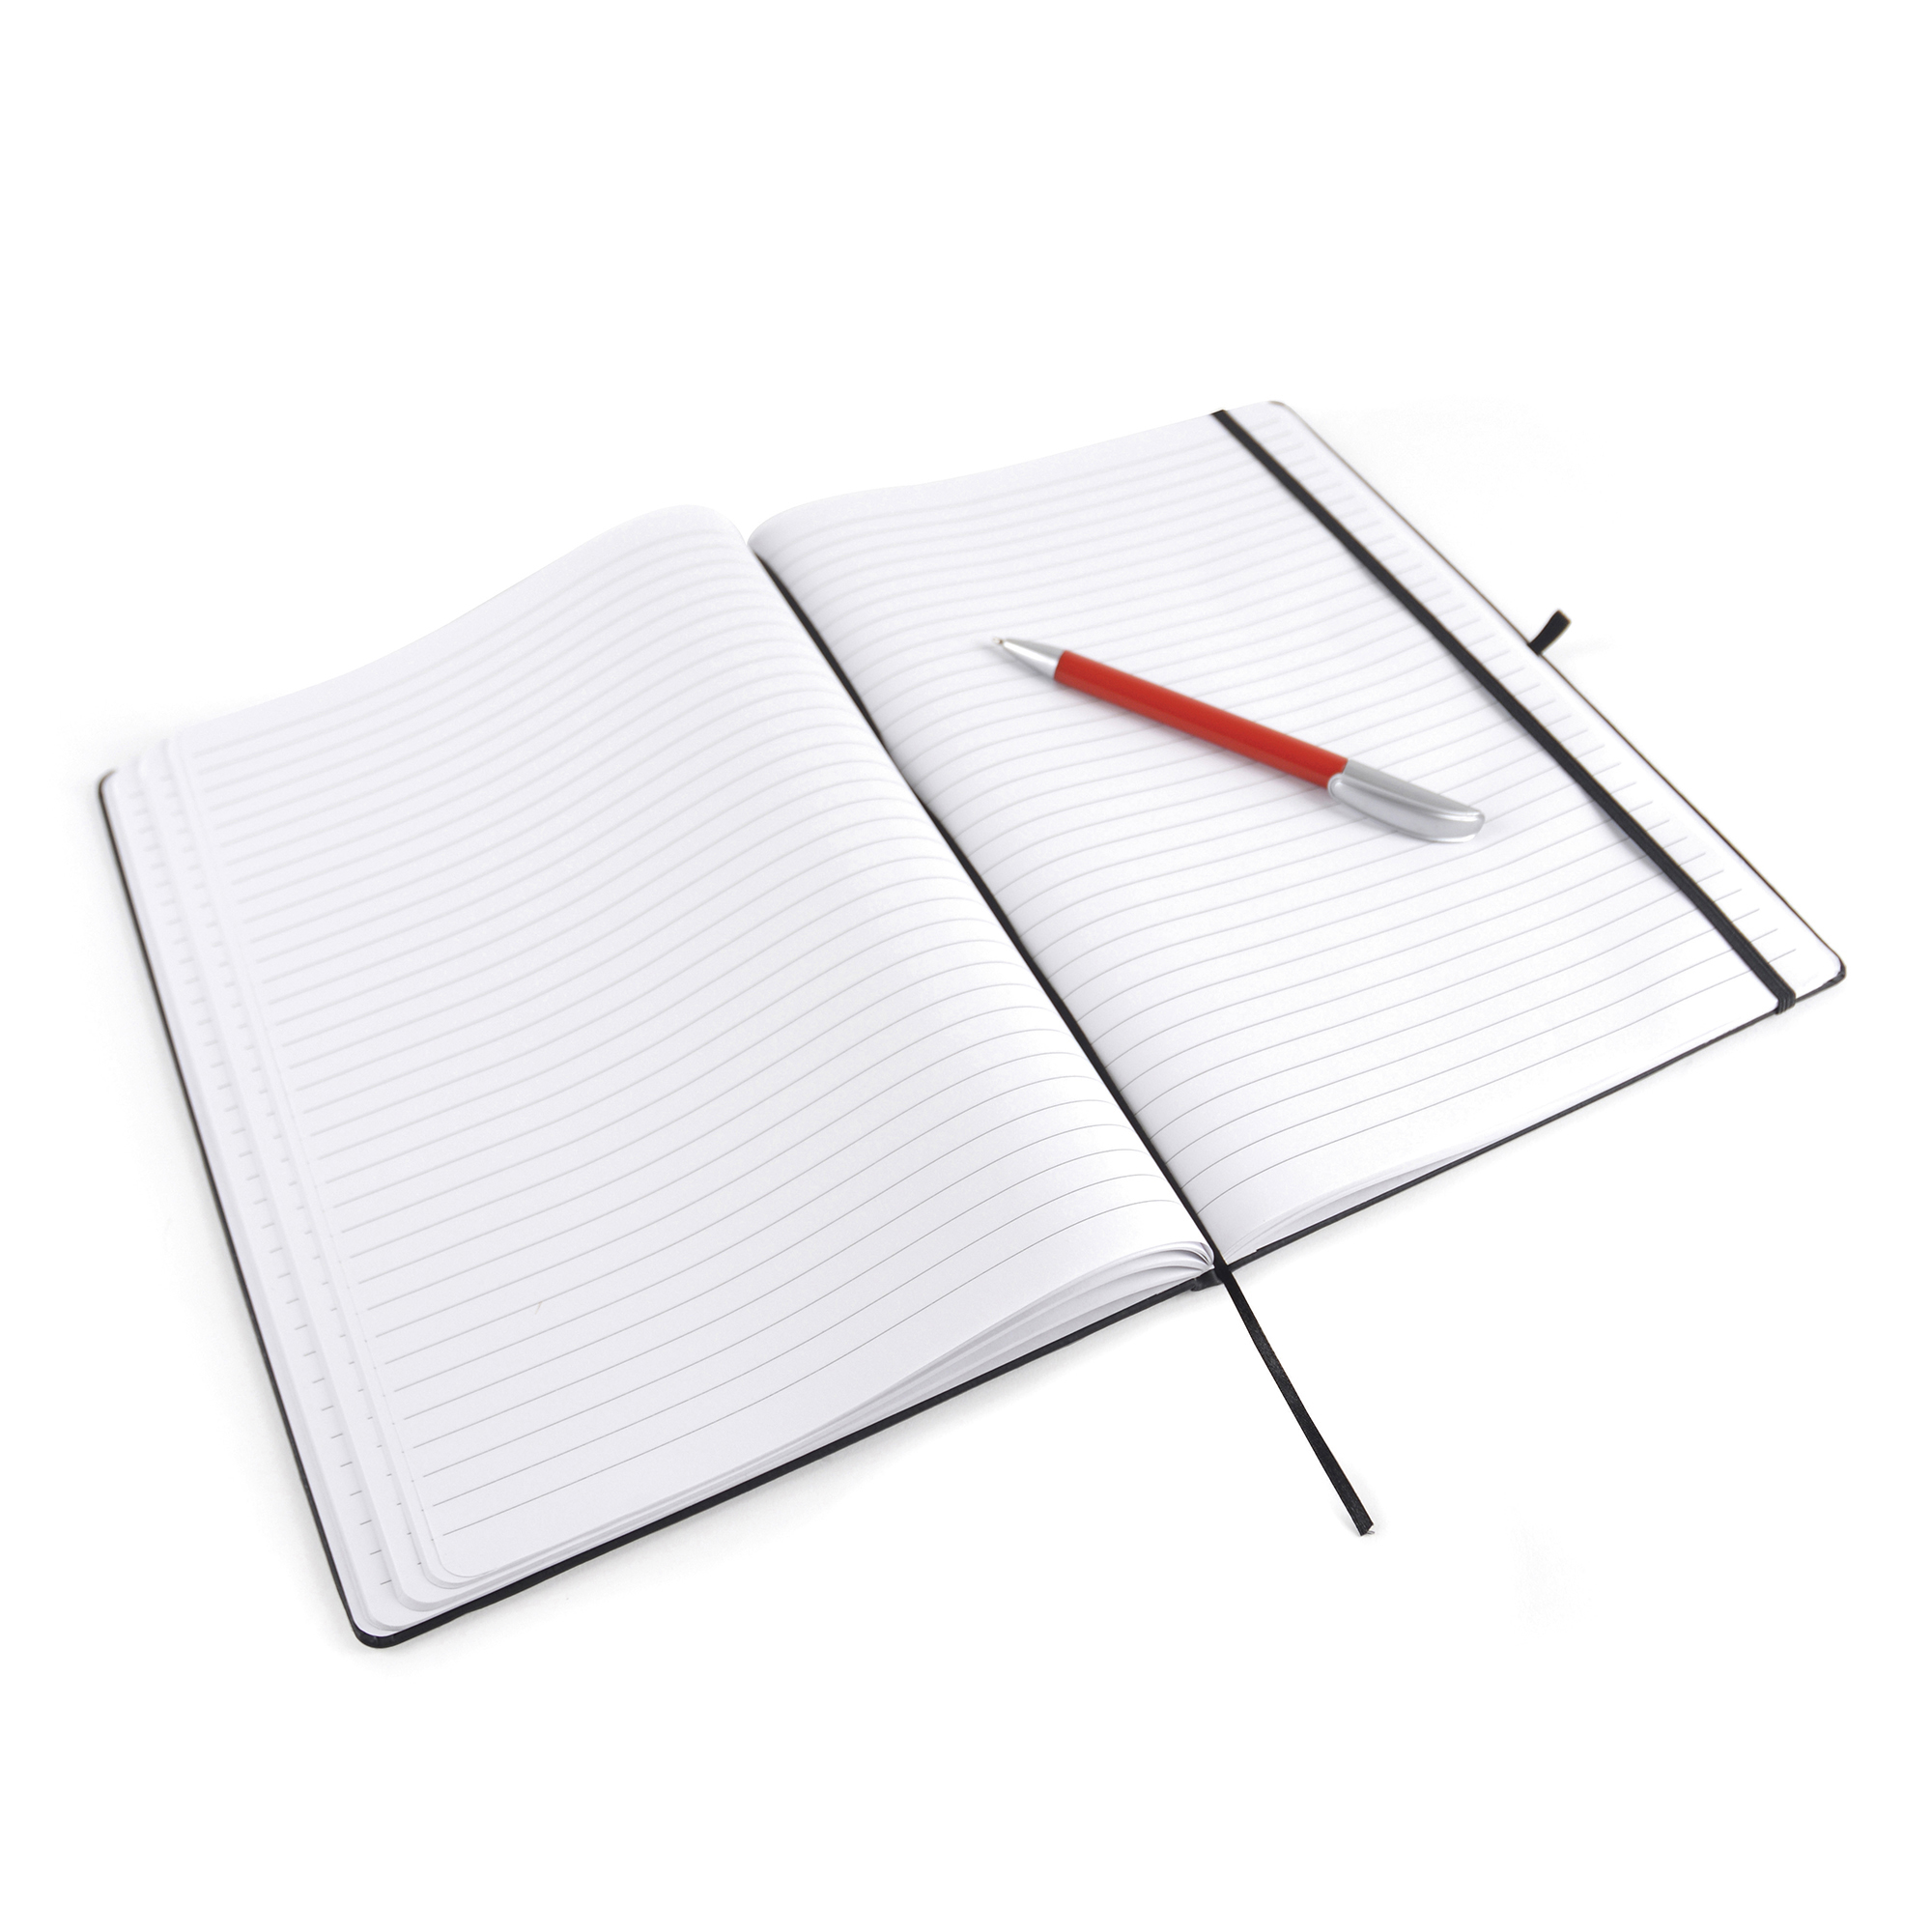 Promotional A4 Mole Notepad